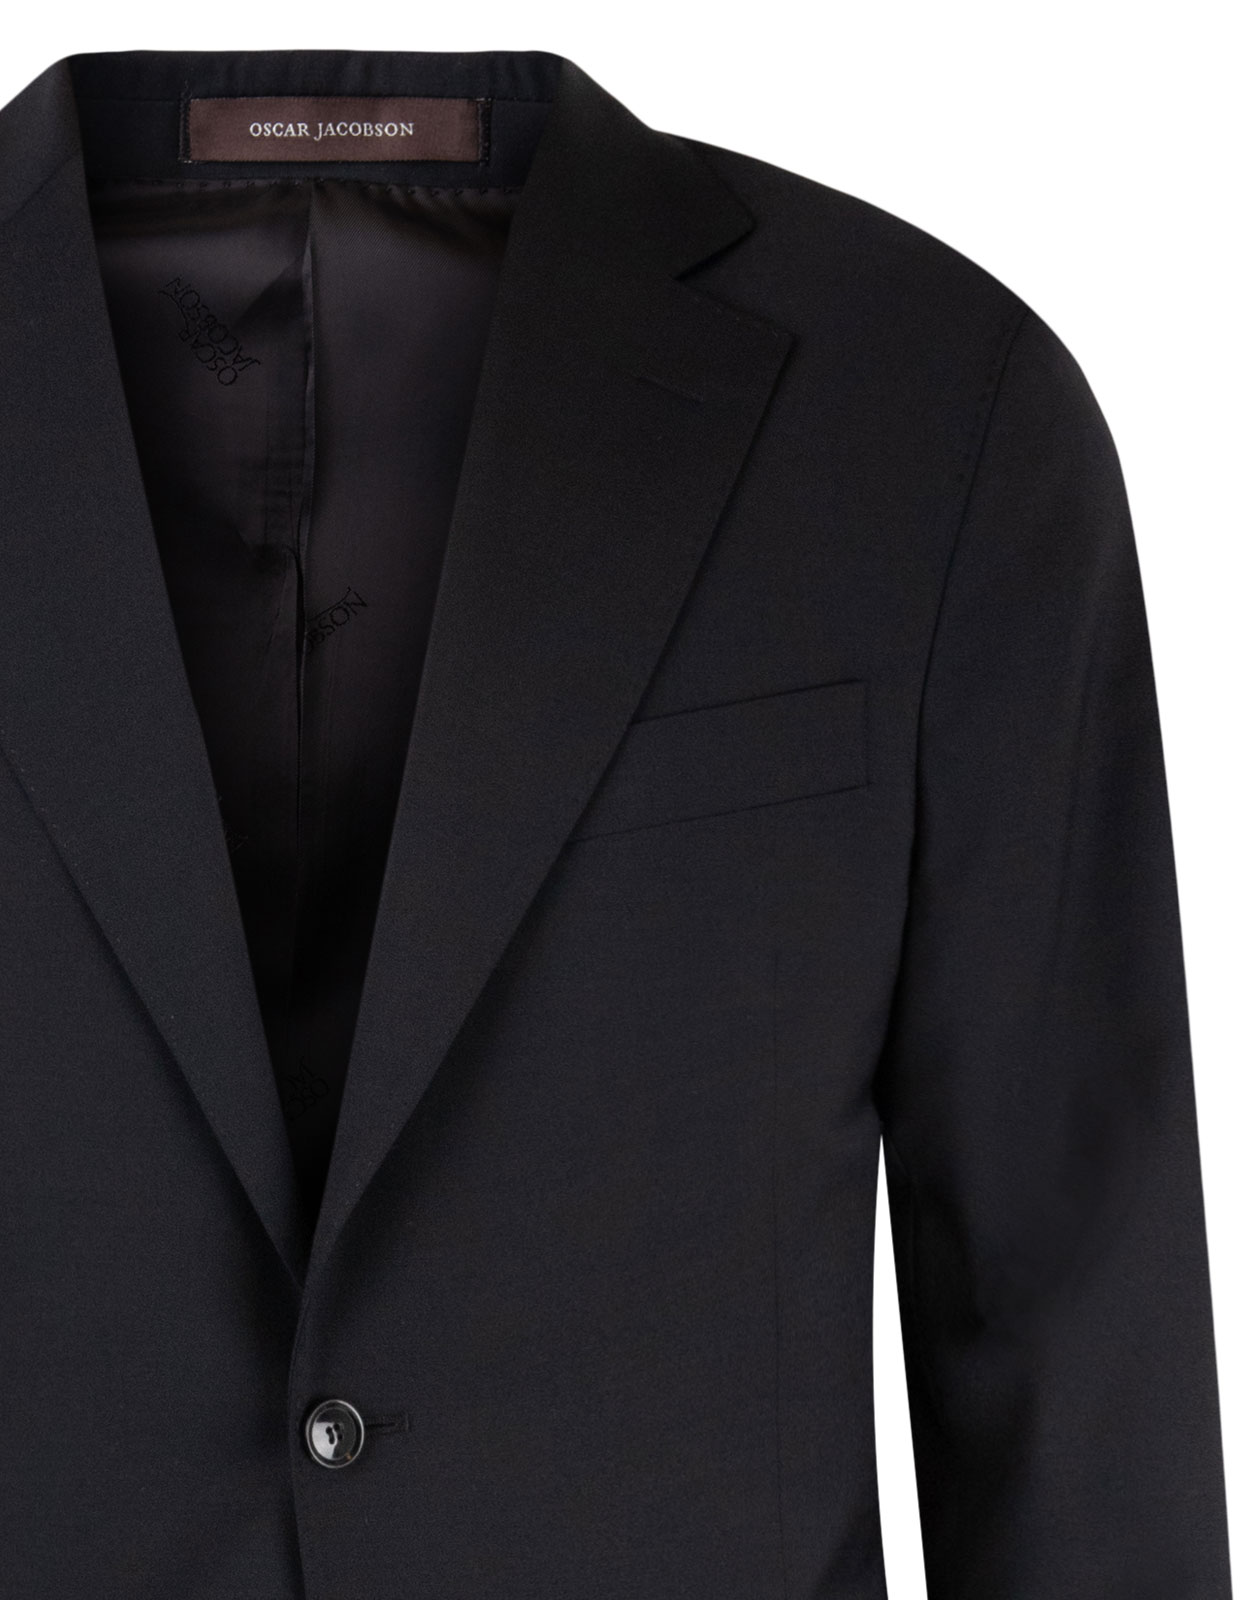 Ego Suit Slim Wool Stretch Black Stl 150